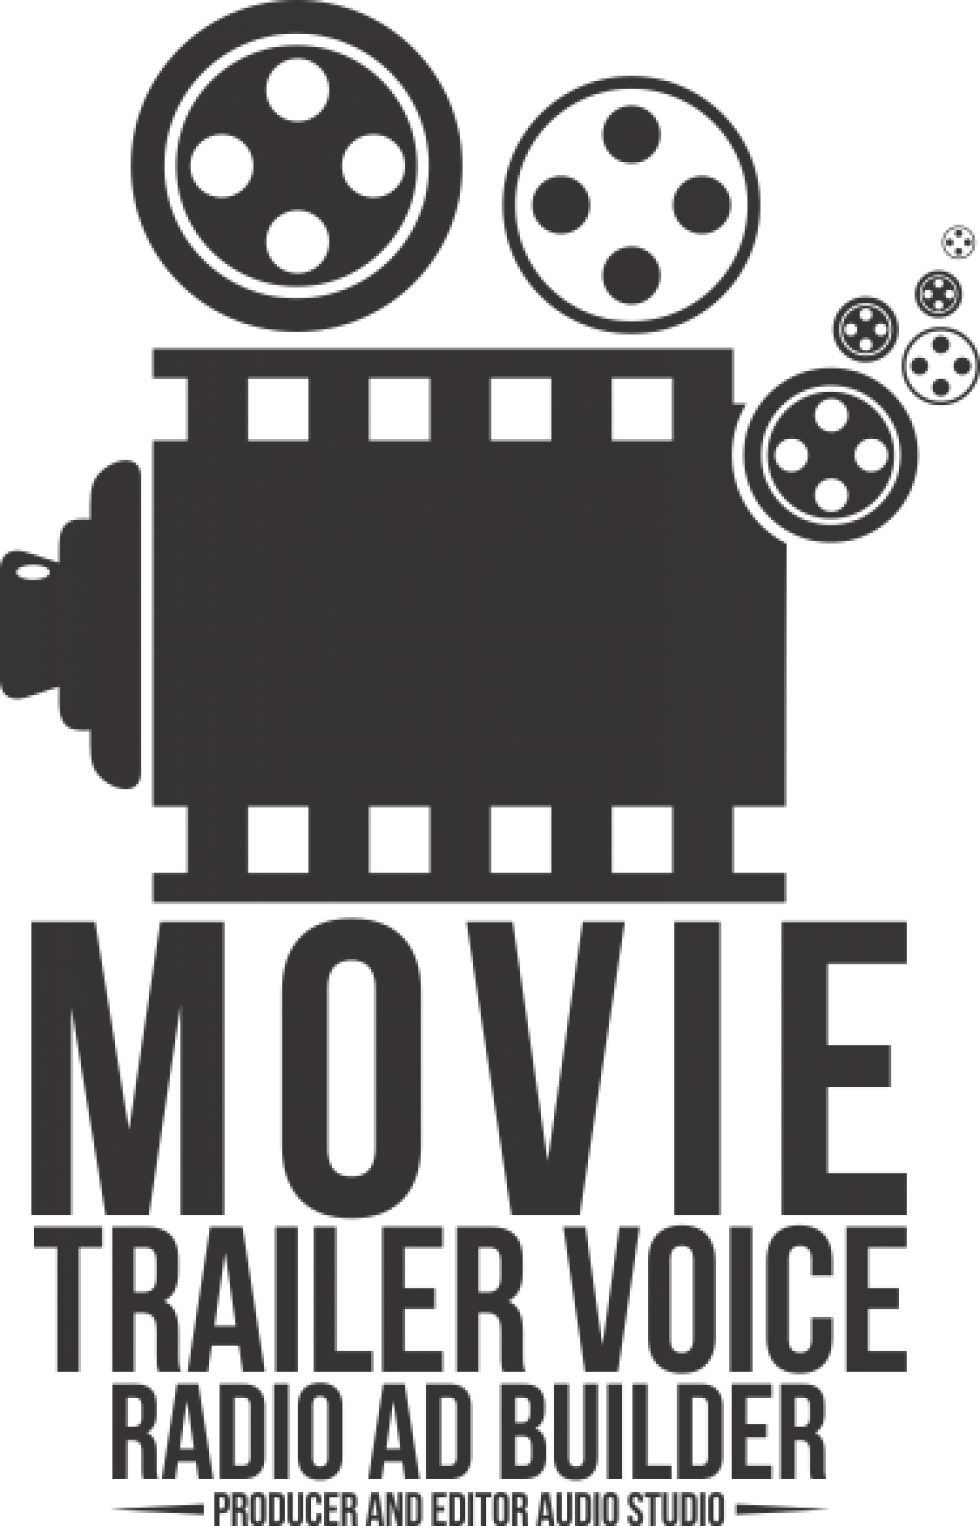 Trailers of film png movie. Trailer voice and radio